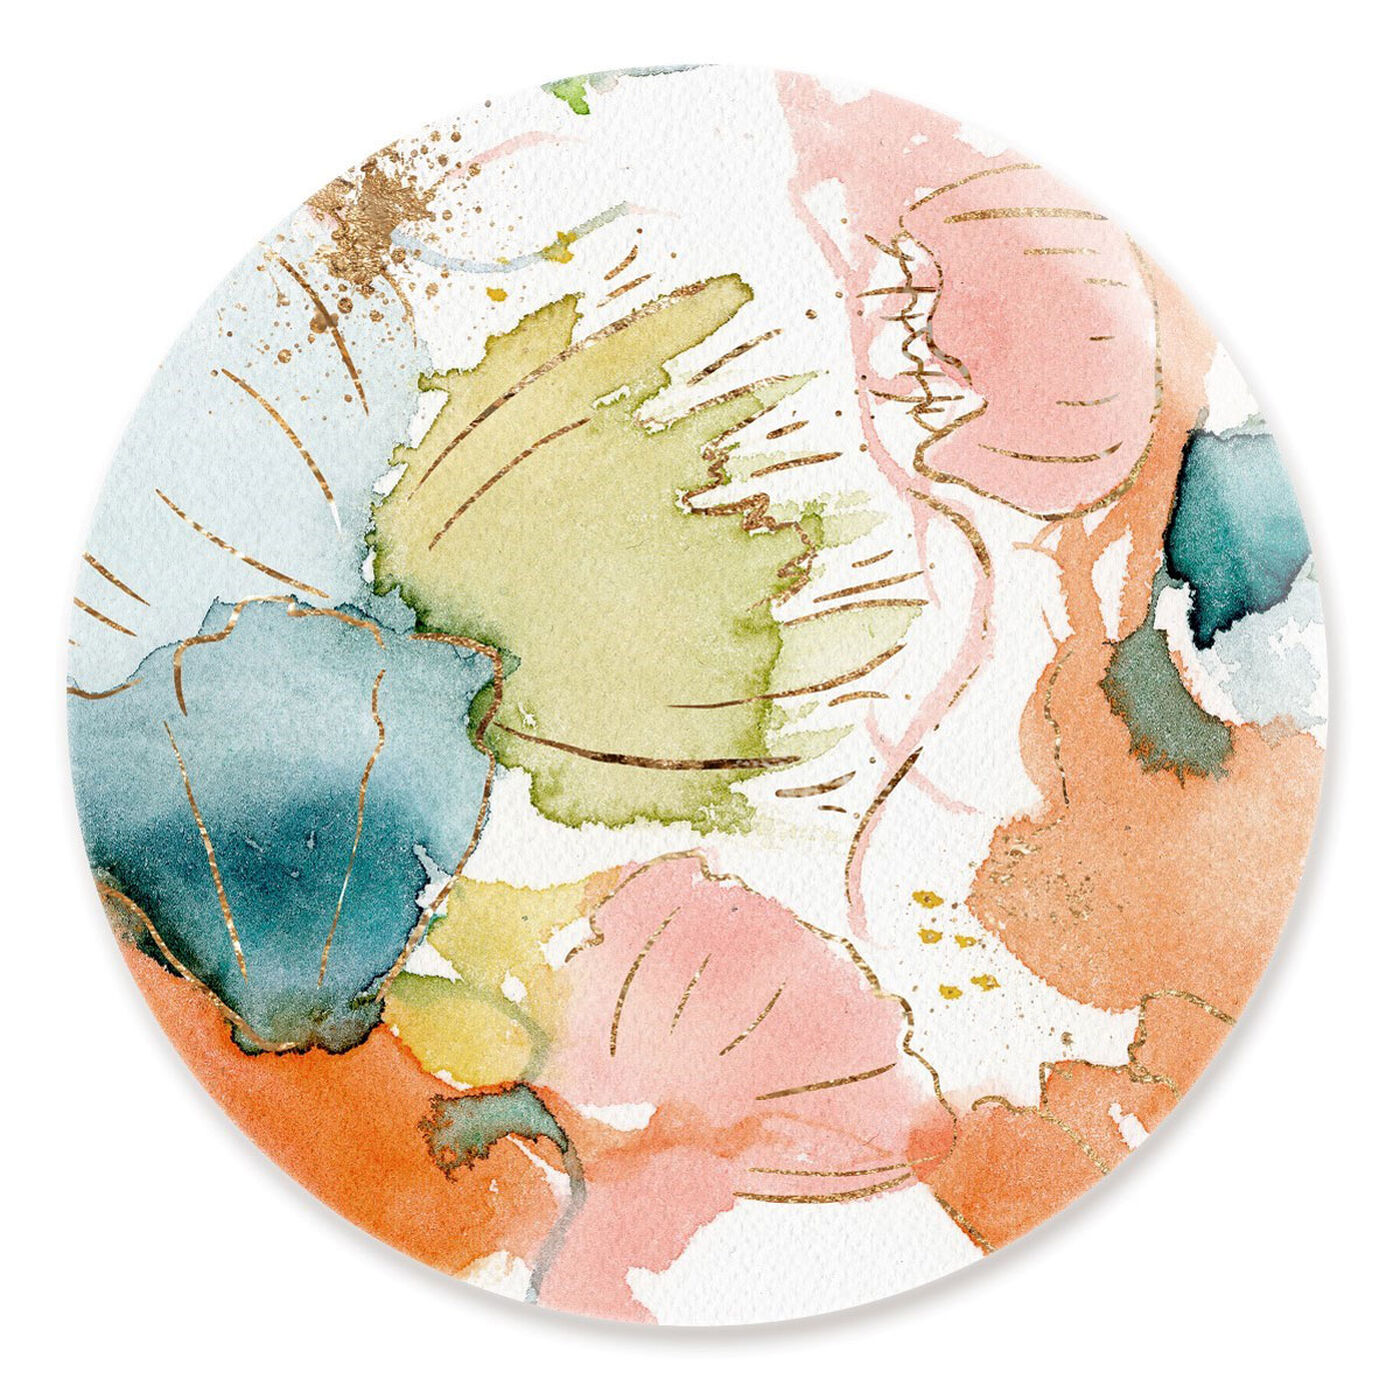 Front view of My Wild Garden Circle featuring abstract and watercolor art.